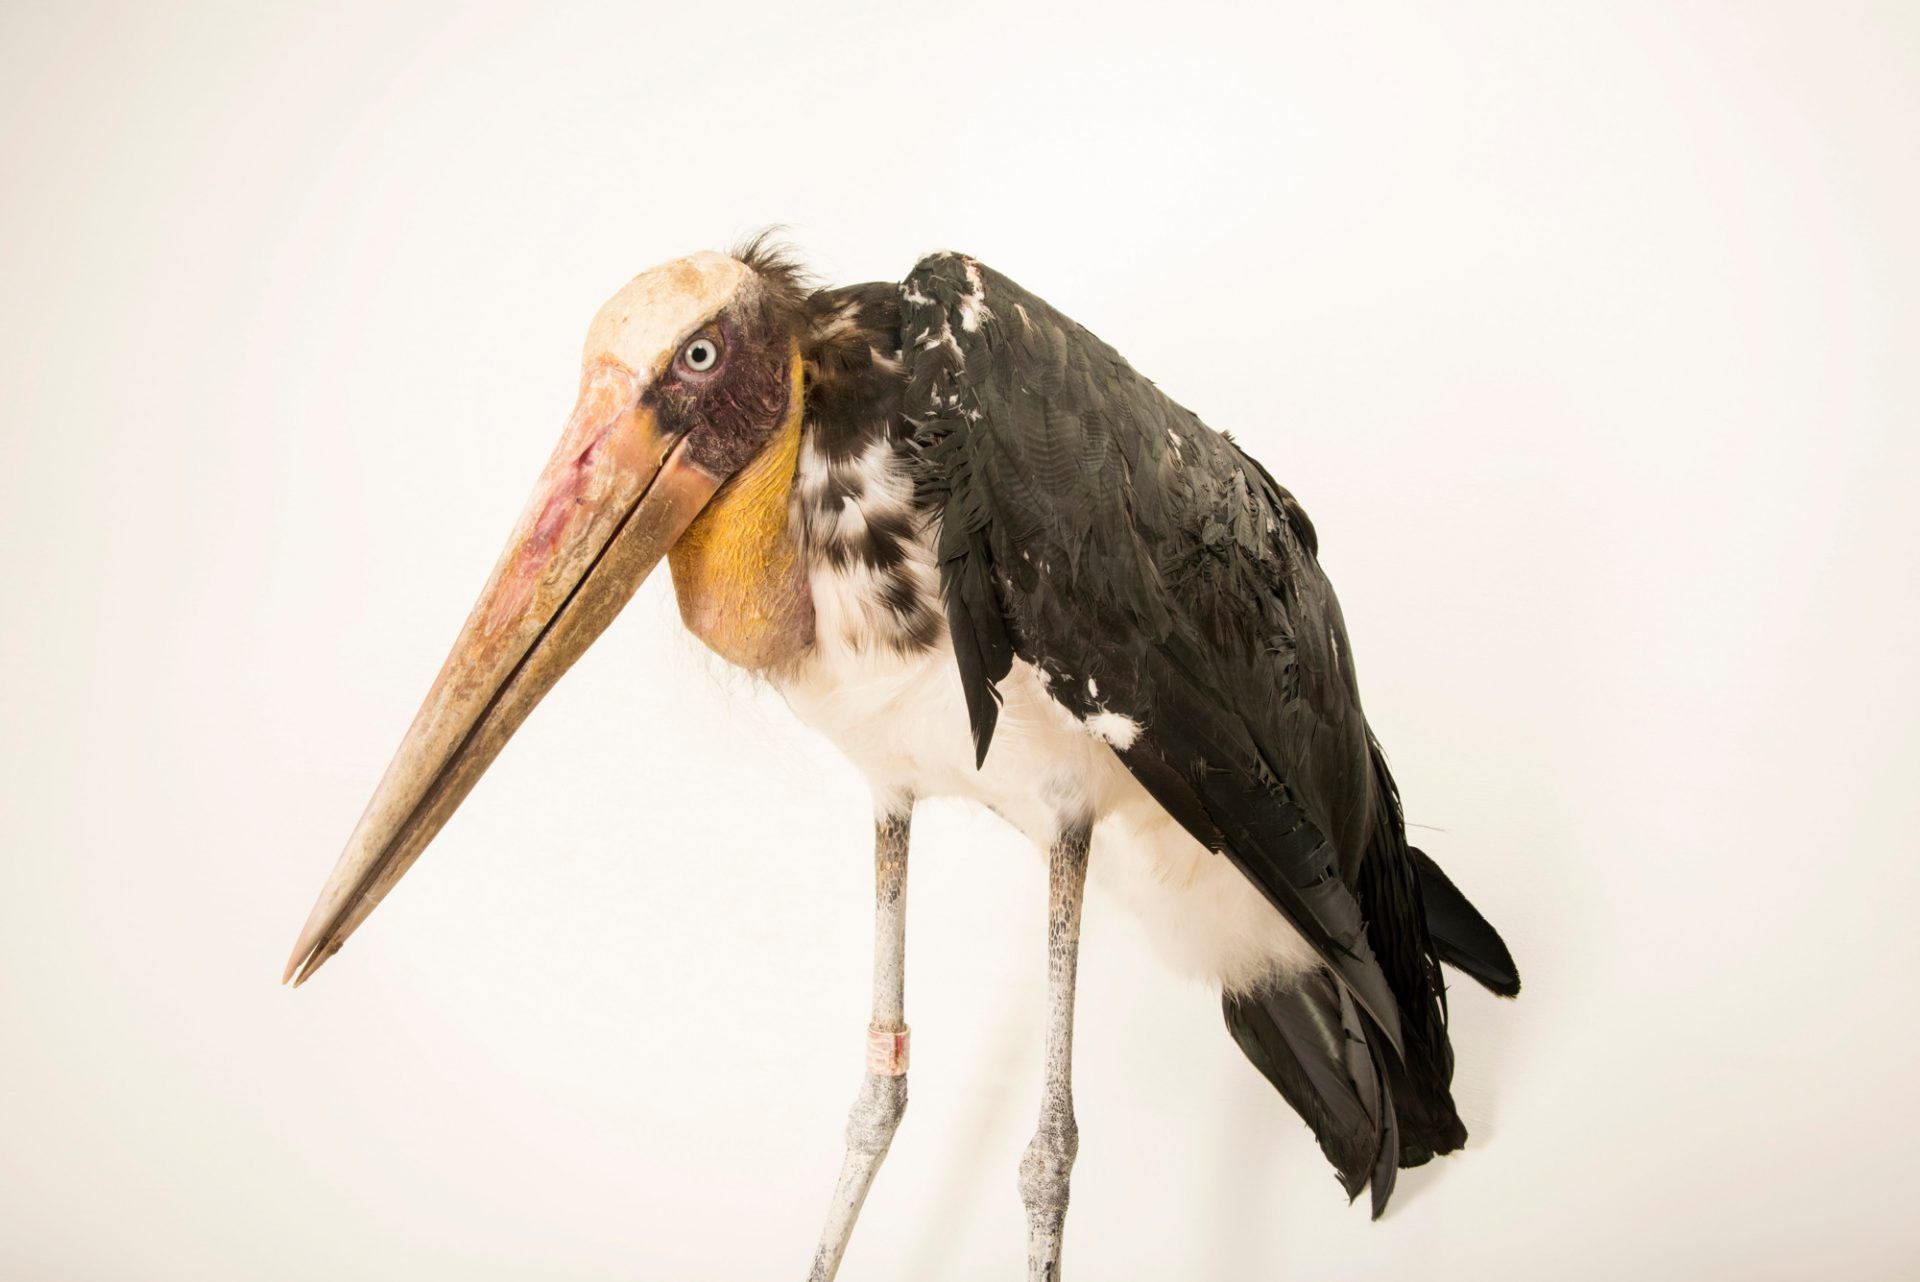 Photo: Lesser adjutant stork (Leptoptilos javanicus) at Angkor Center for Conservation of Biodiversity (ACCB). This species is listed as Vulnerable on IUCN.